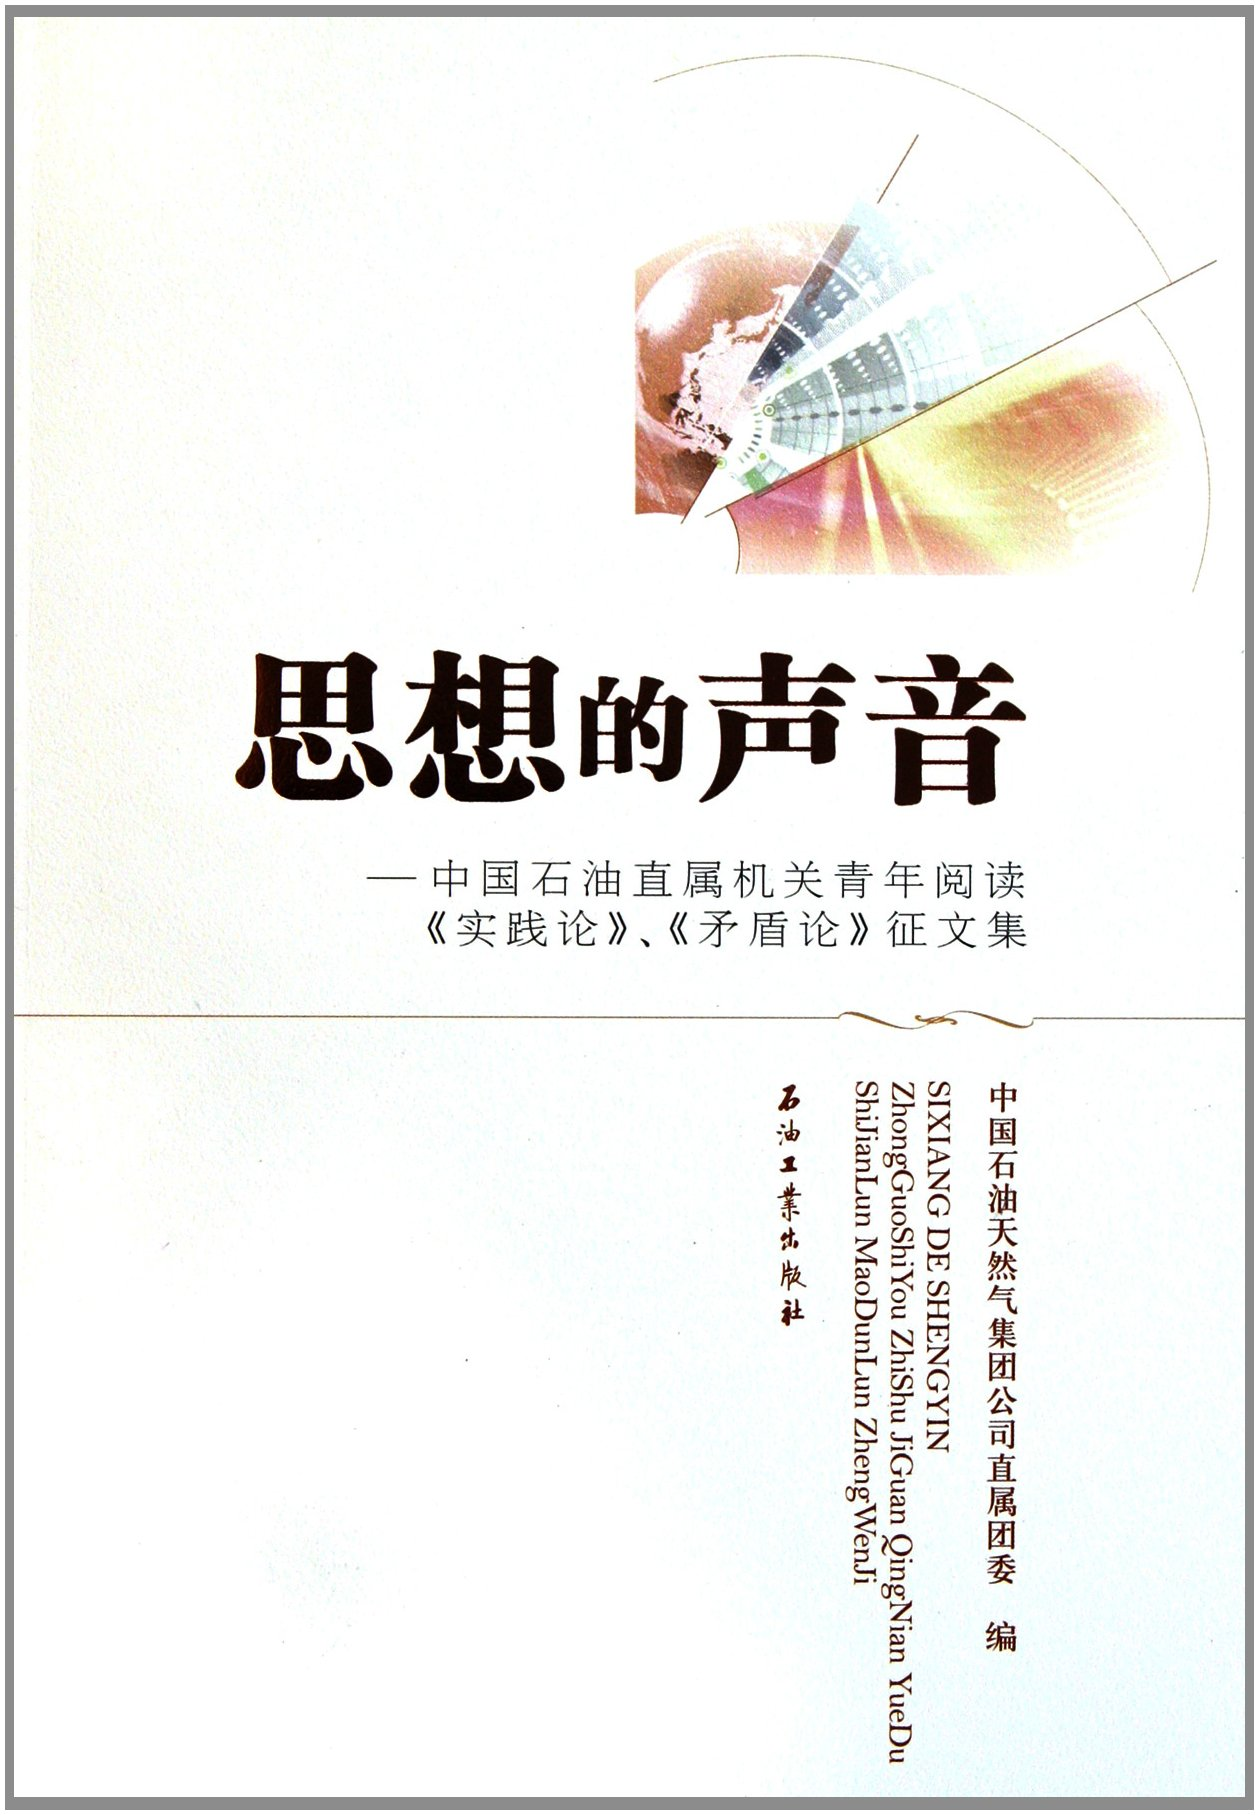 Download The Sound of Thinking: A Direct Subordinate Organization of China National Petroleum Corporations Young Staffs Review on Practice and Contradiction (Chinese Edition) pdf epub